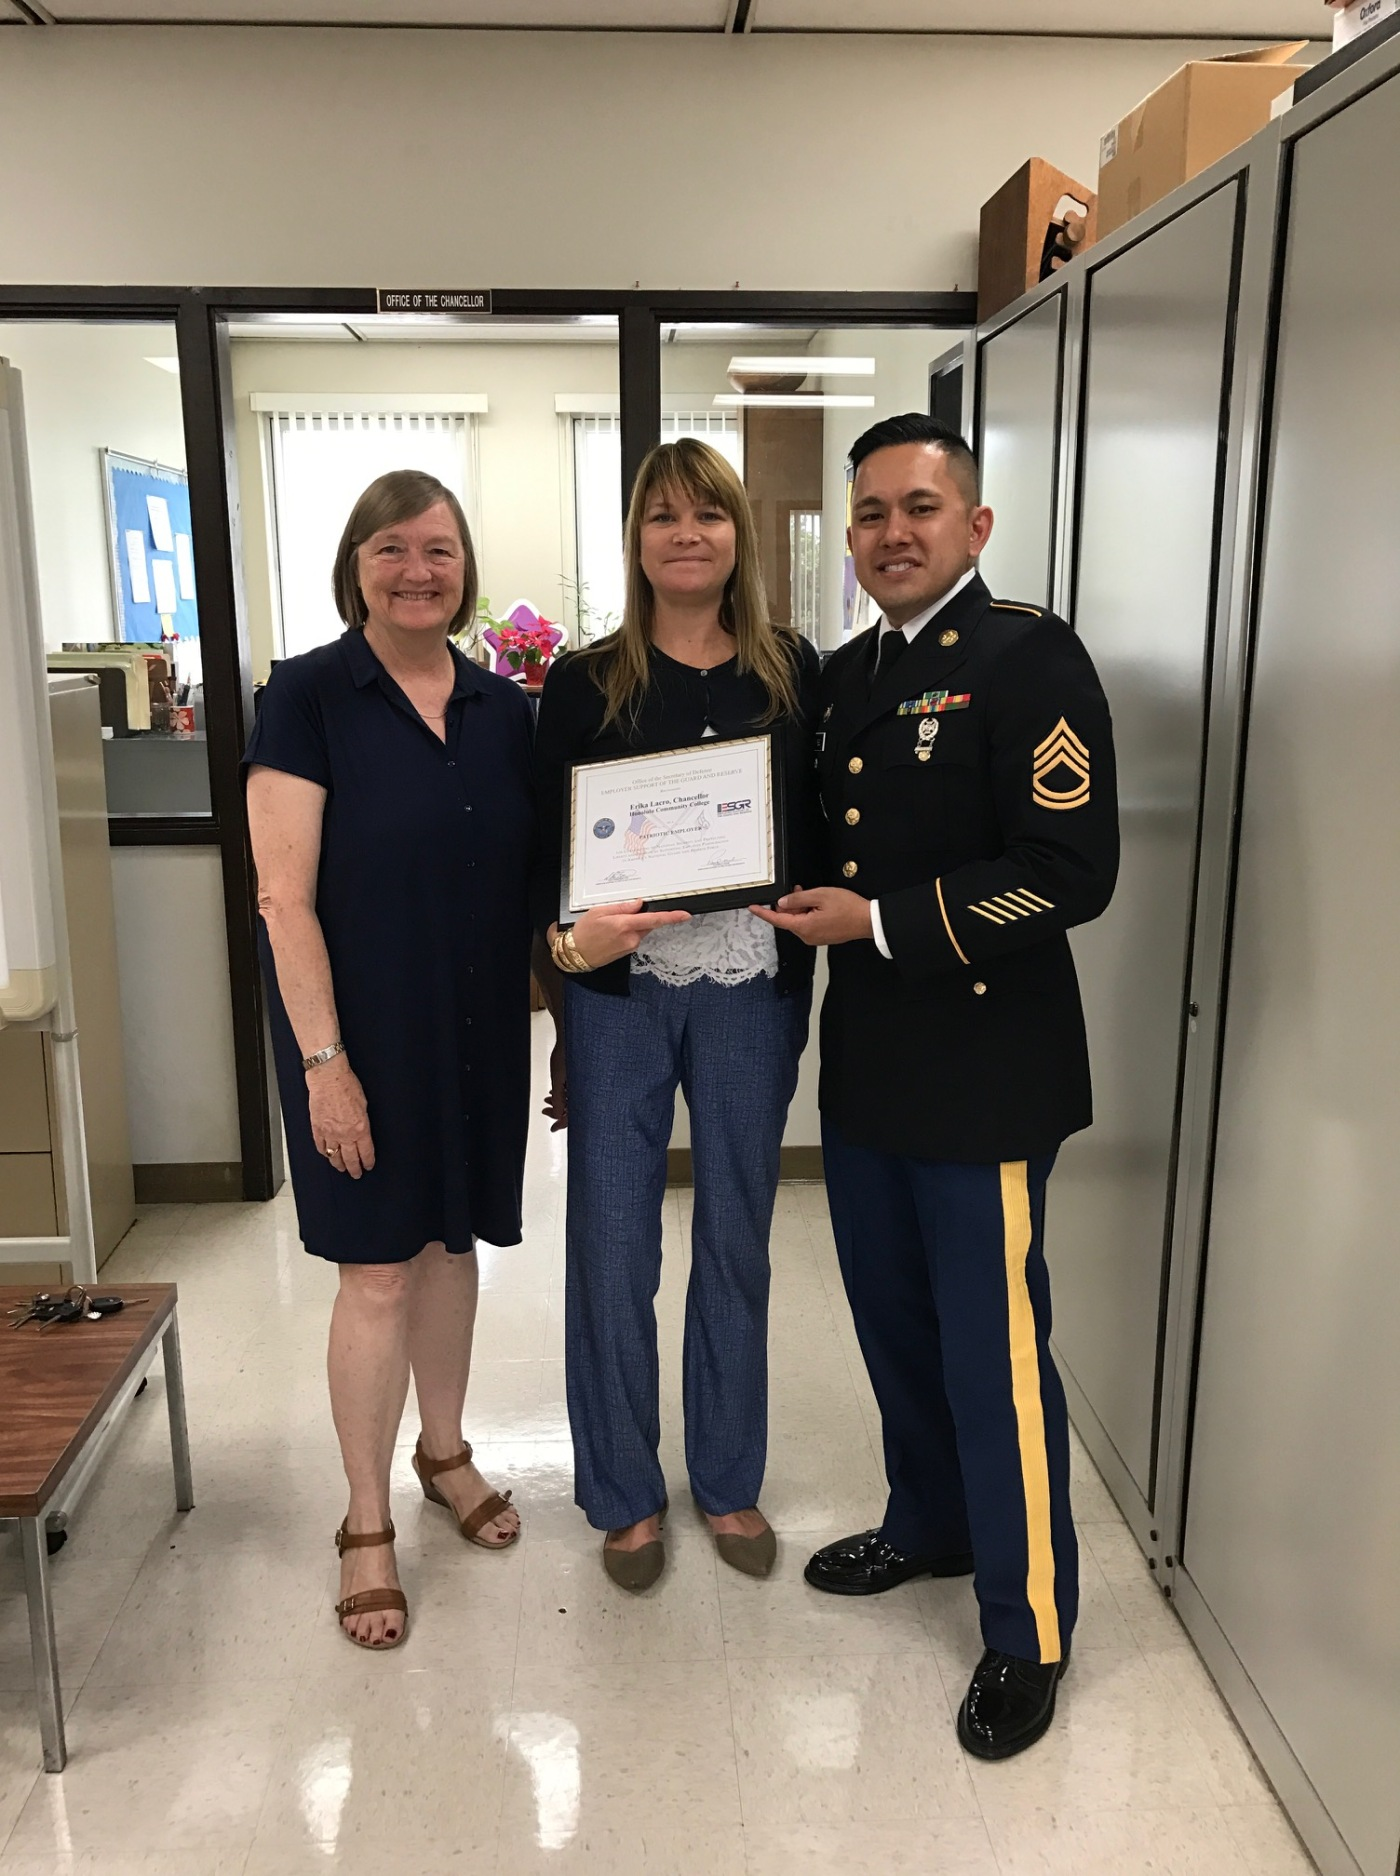 Pictured (L-R): Ann Geenlee with ESGR, Chancellor Lacro and Brent Rubio